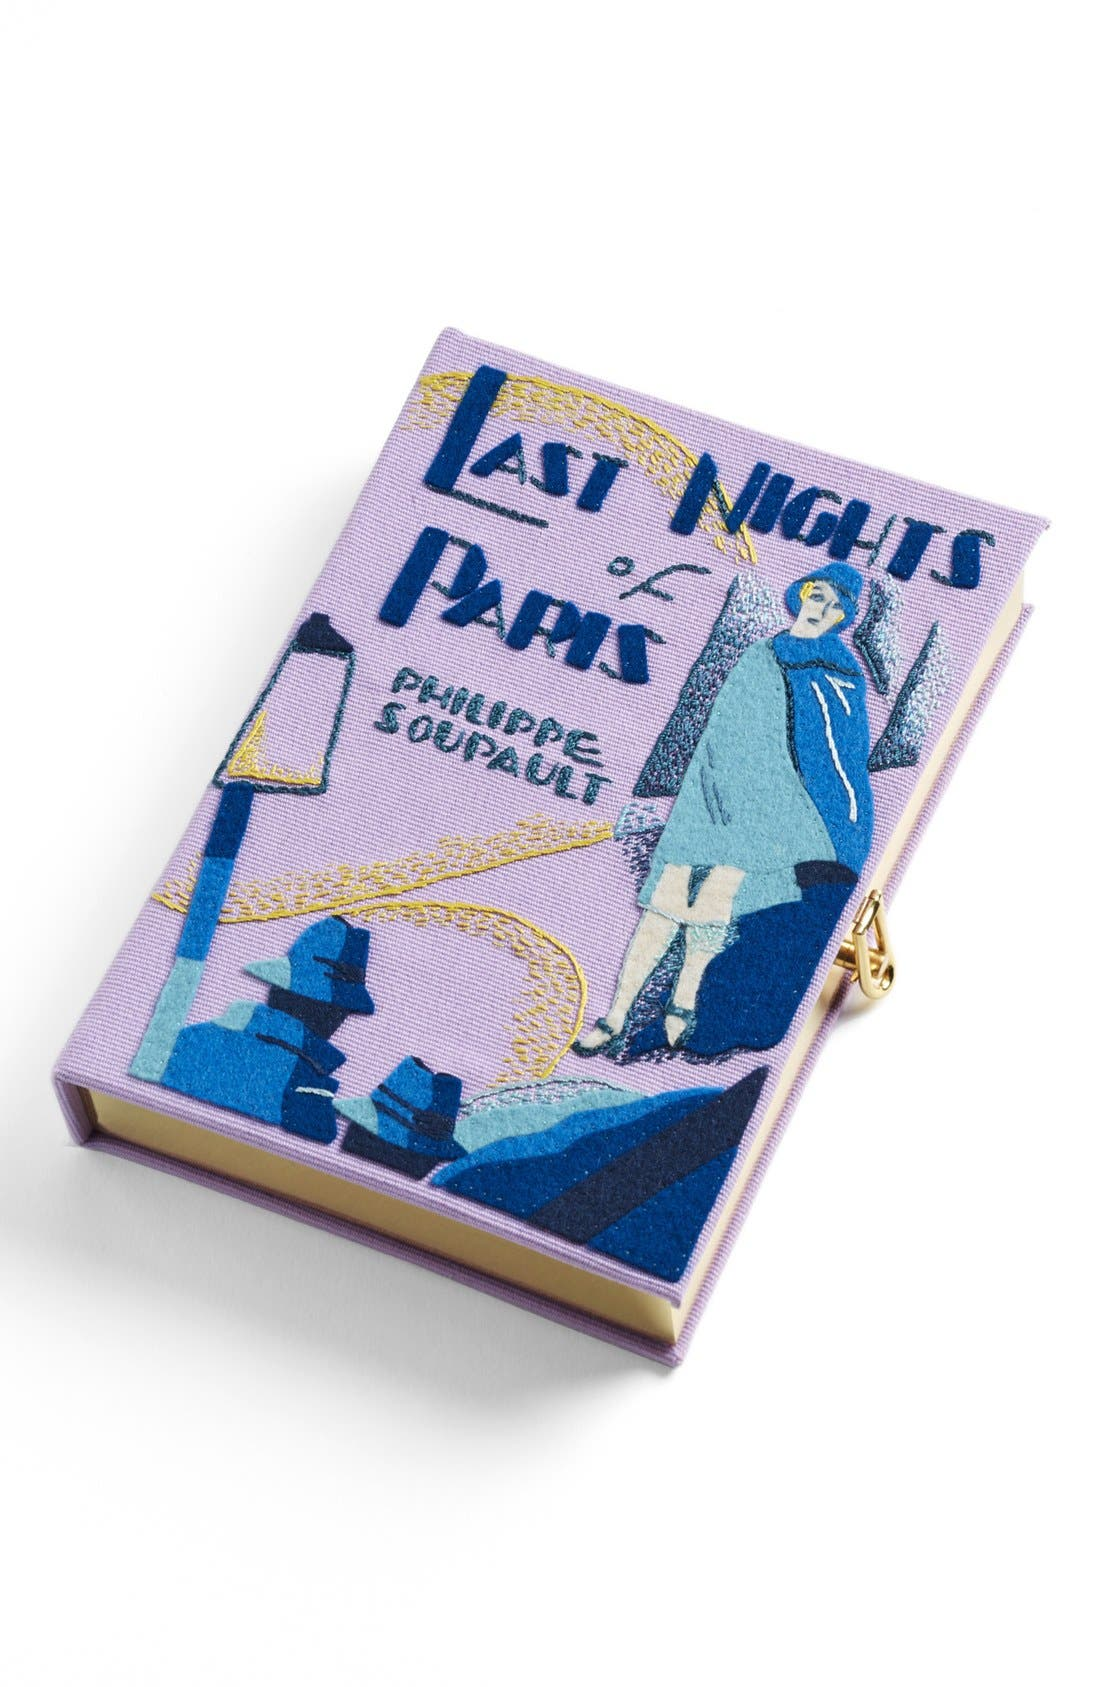 Alternate Image 1 Selected - Olympia Le-Tan 'Last Nights of Paris' Limited Edition Clutch